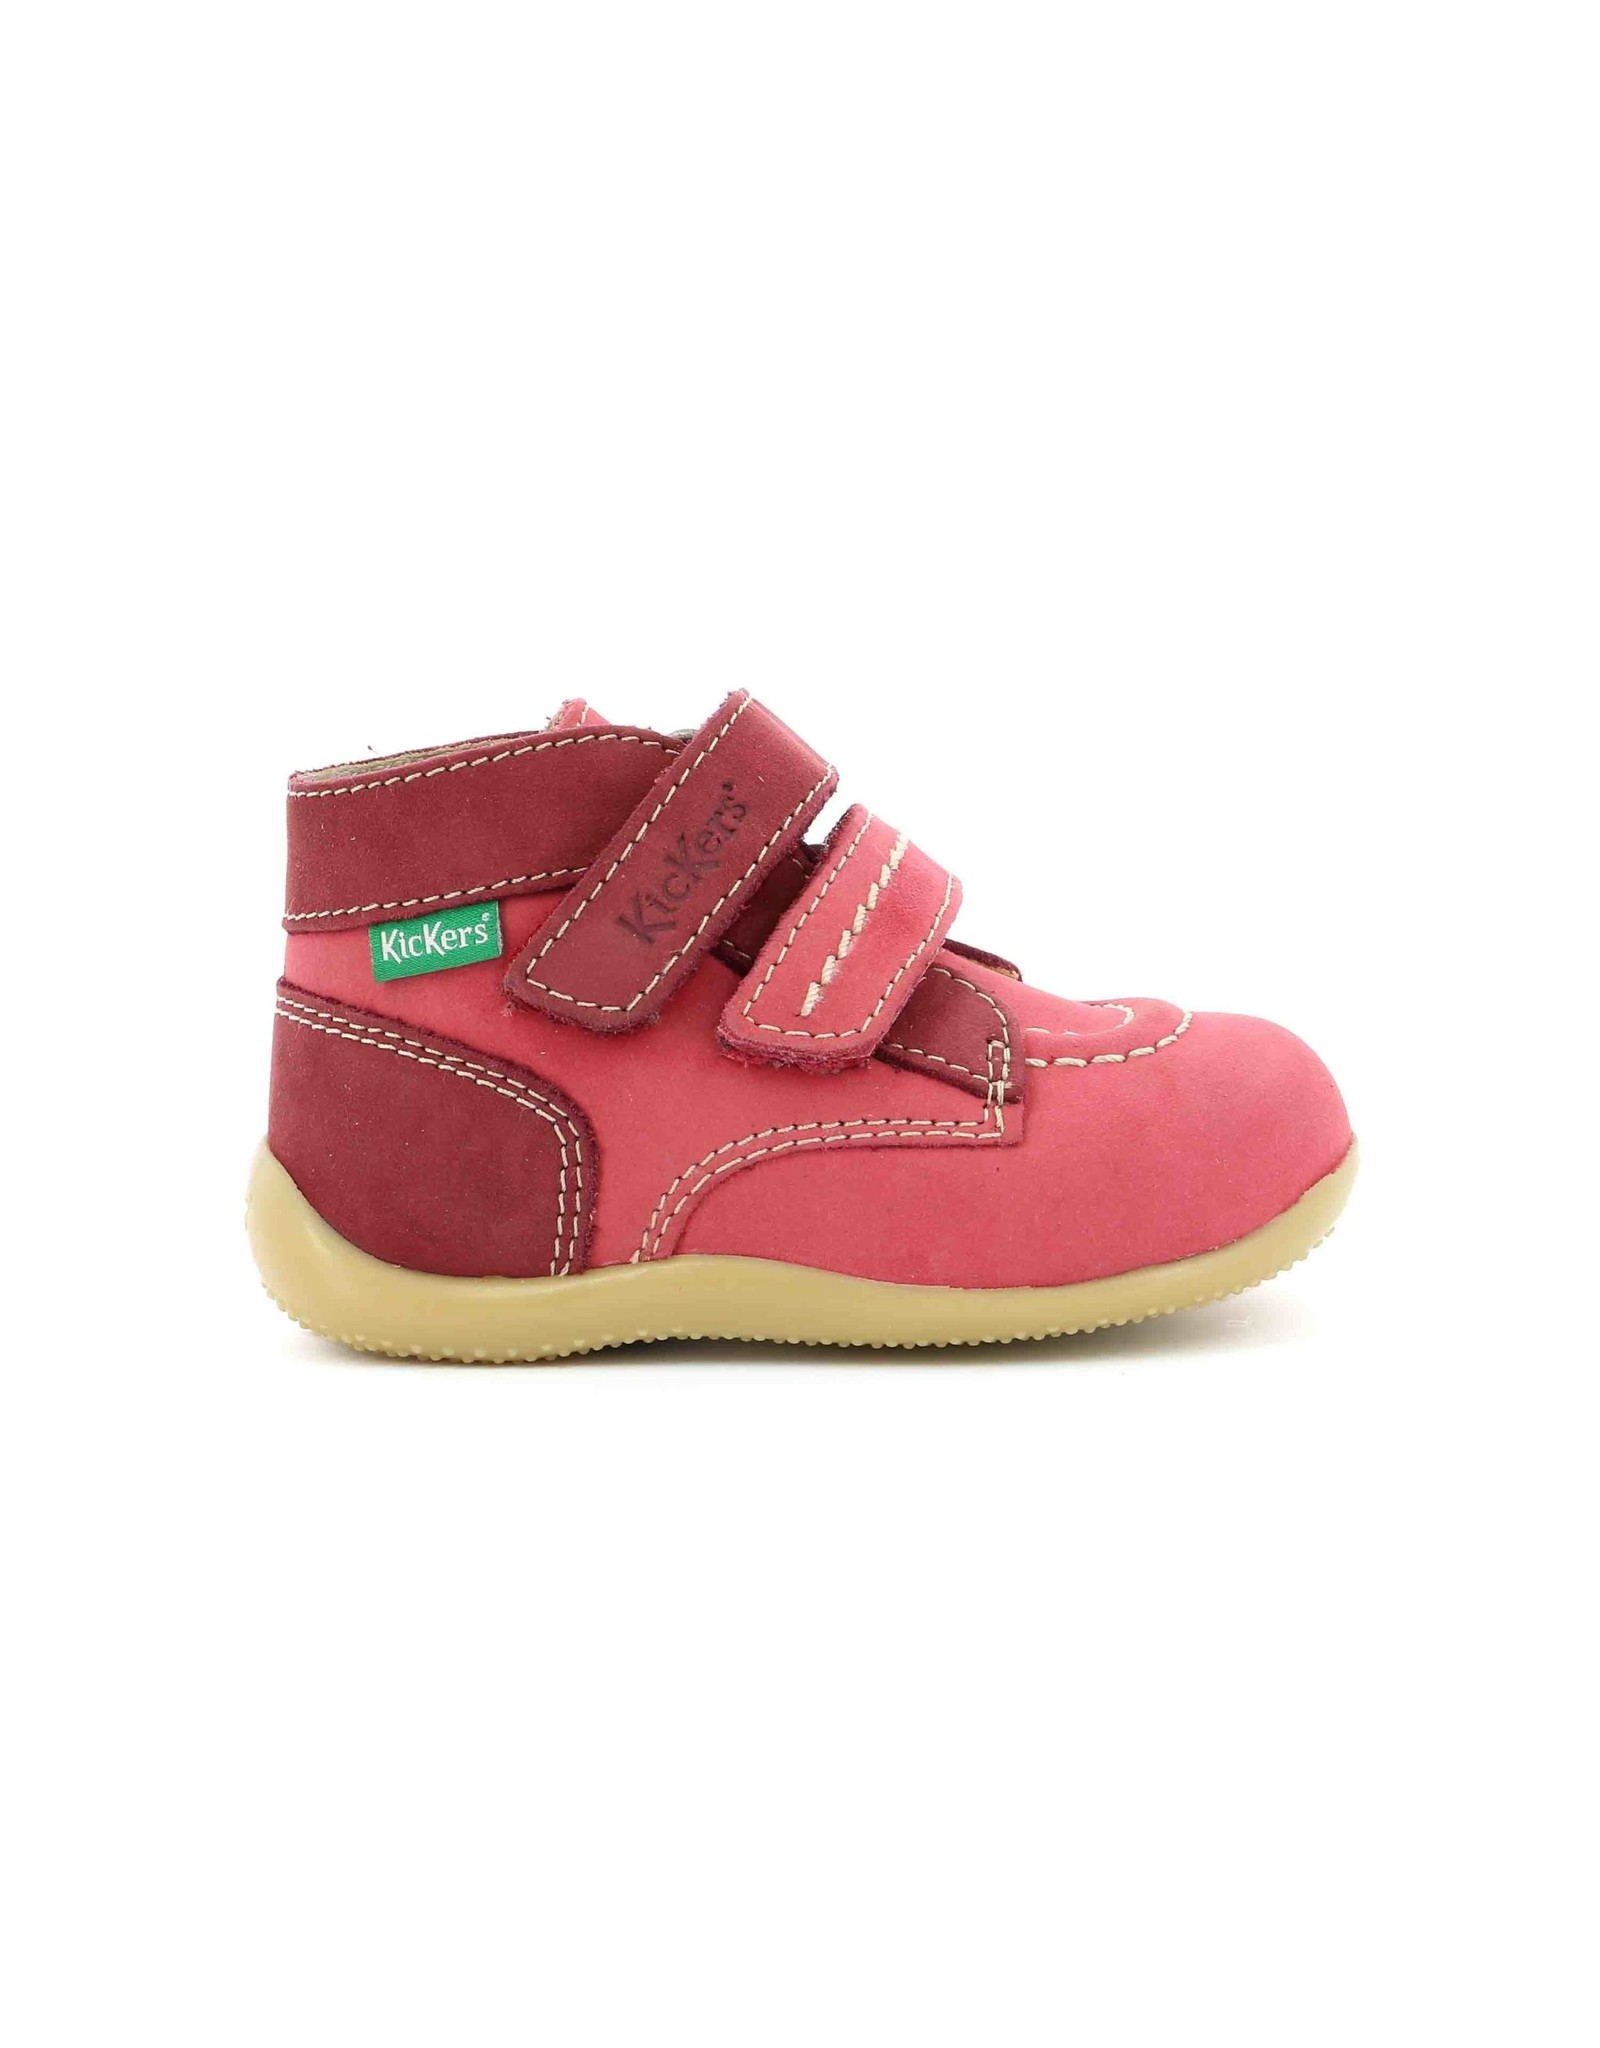 KICKERS BONKRO ROSE ROSE KS67RR 19E620734-10